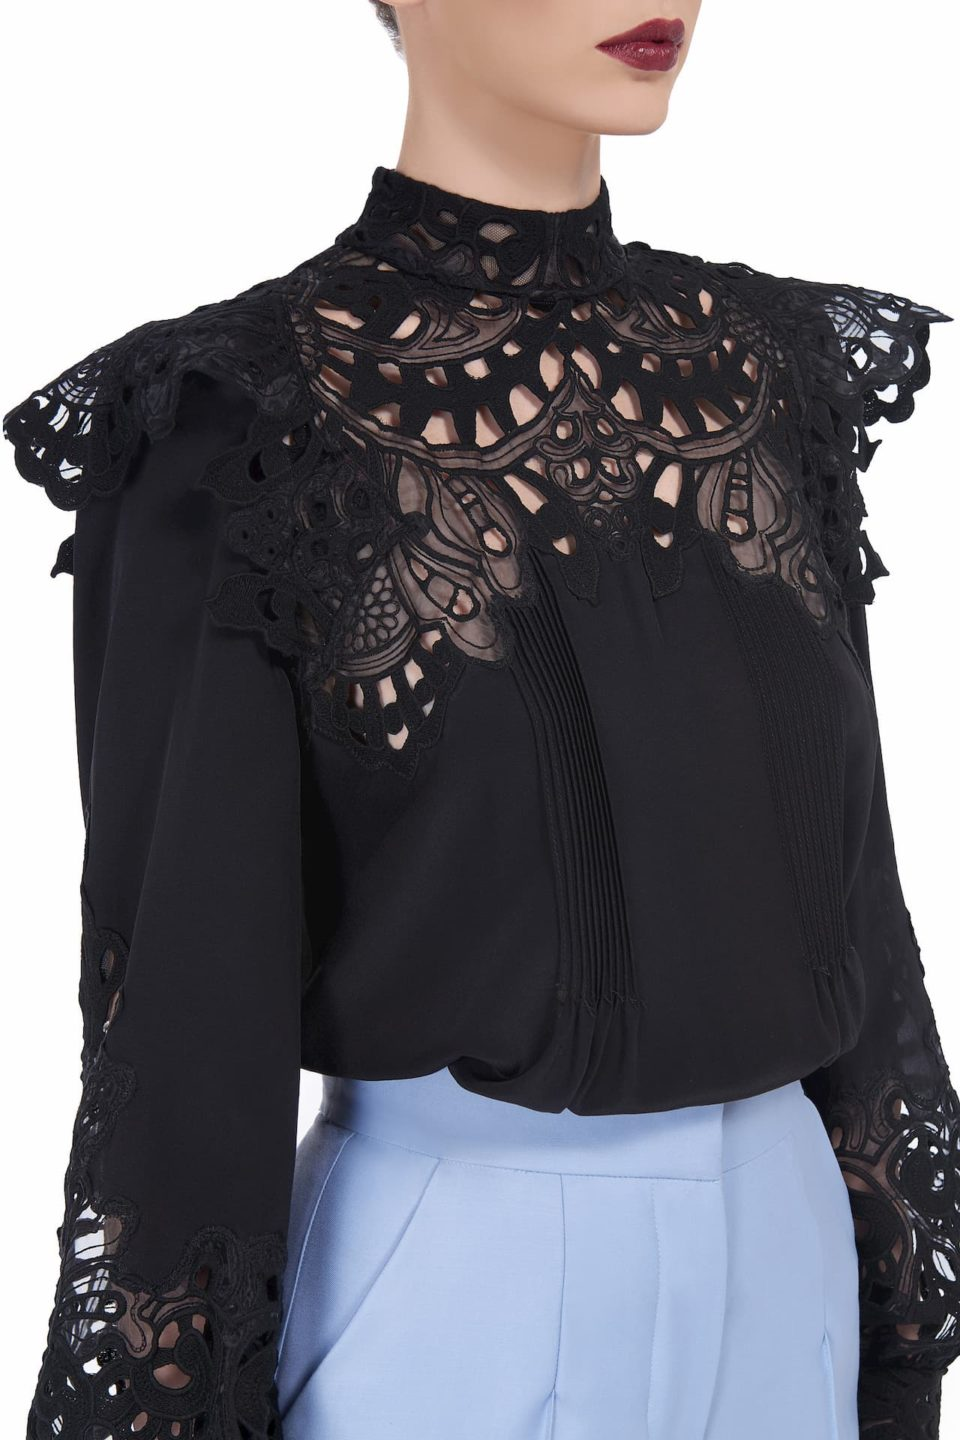 Rilella SS2082-1 black crepe de chine blouse with broderie anglaise lace